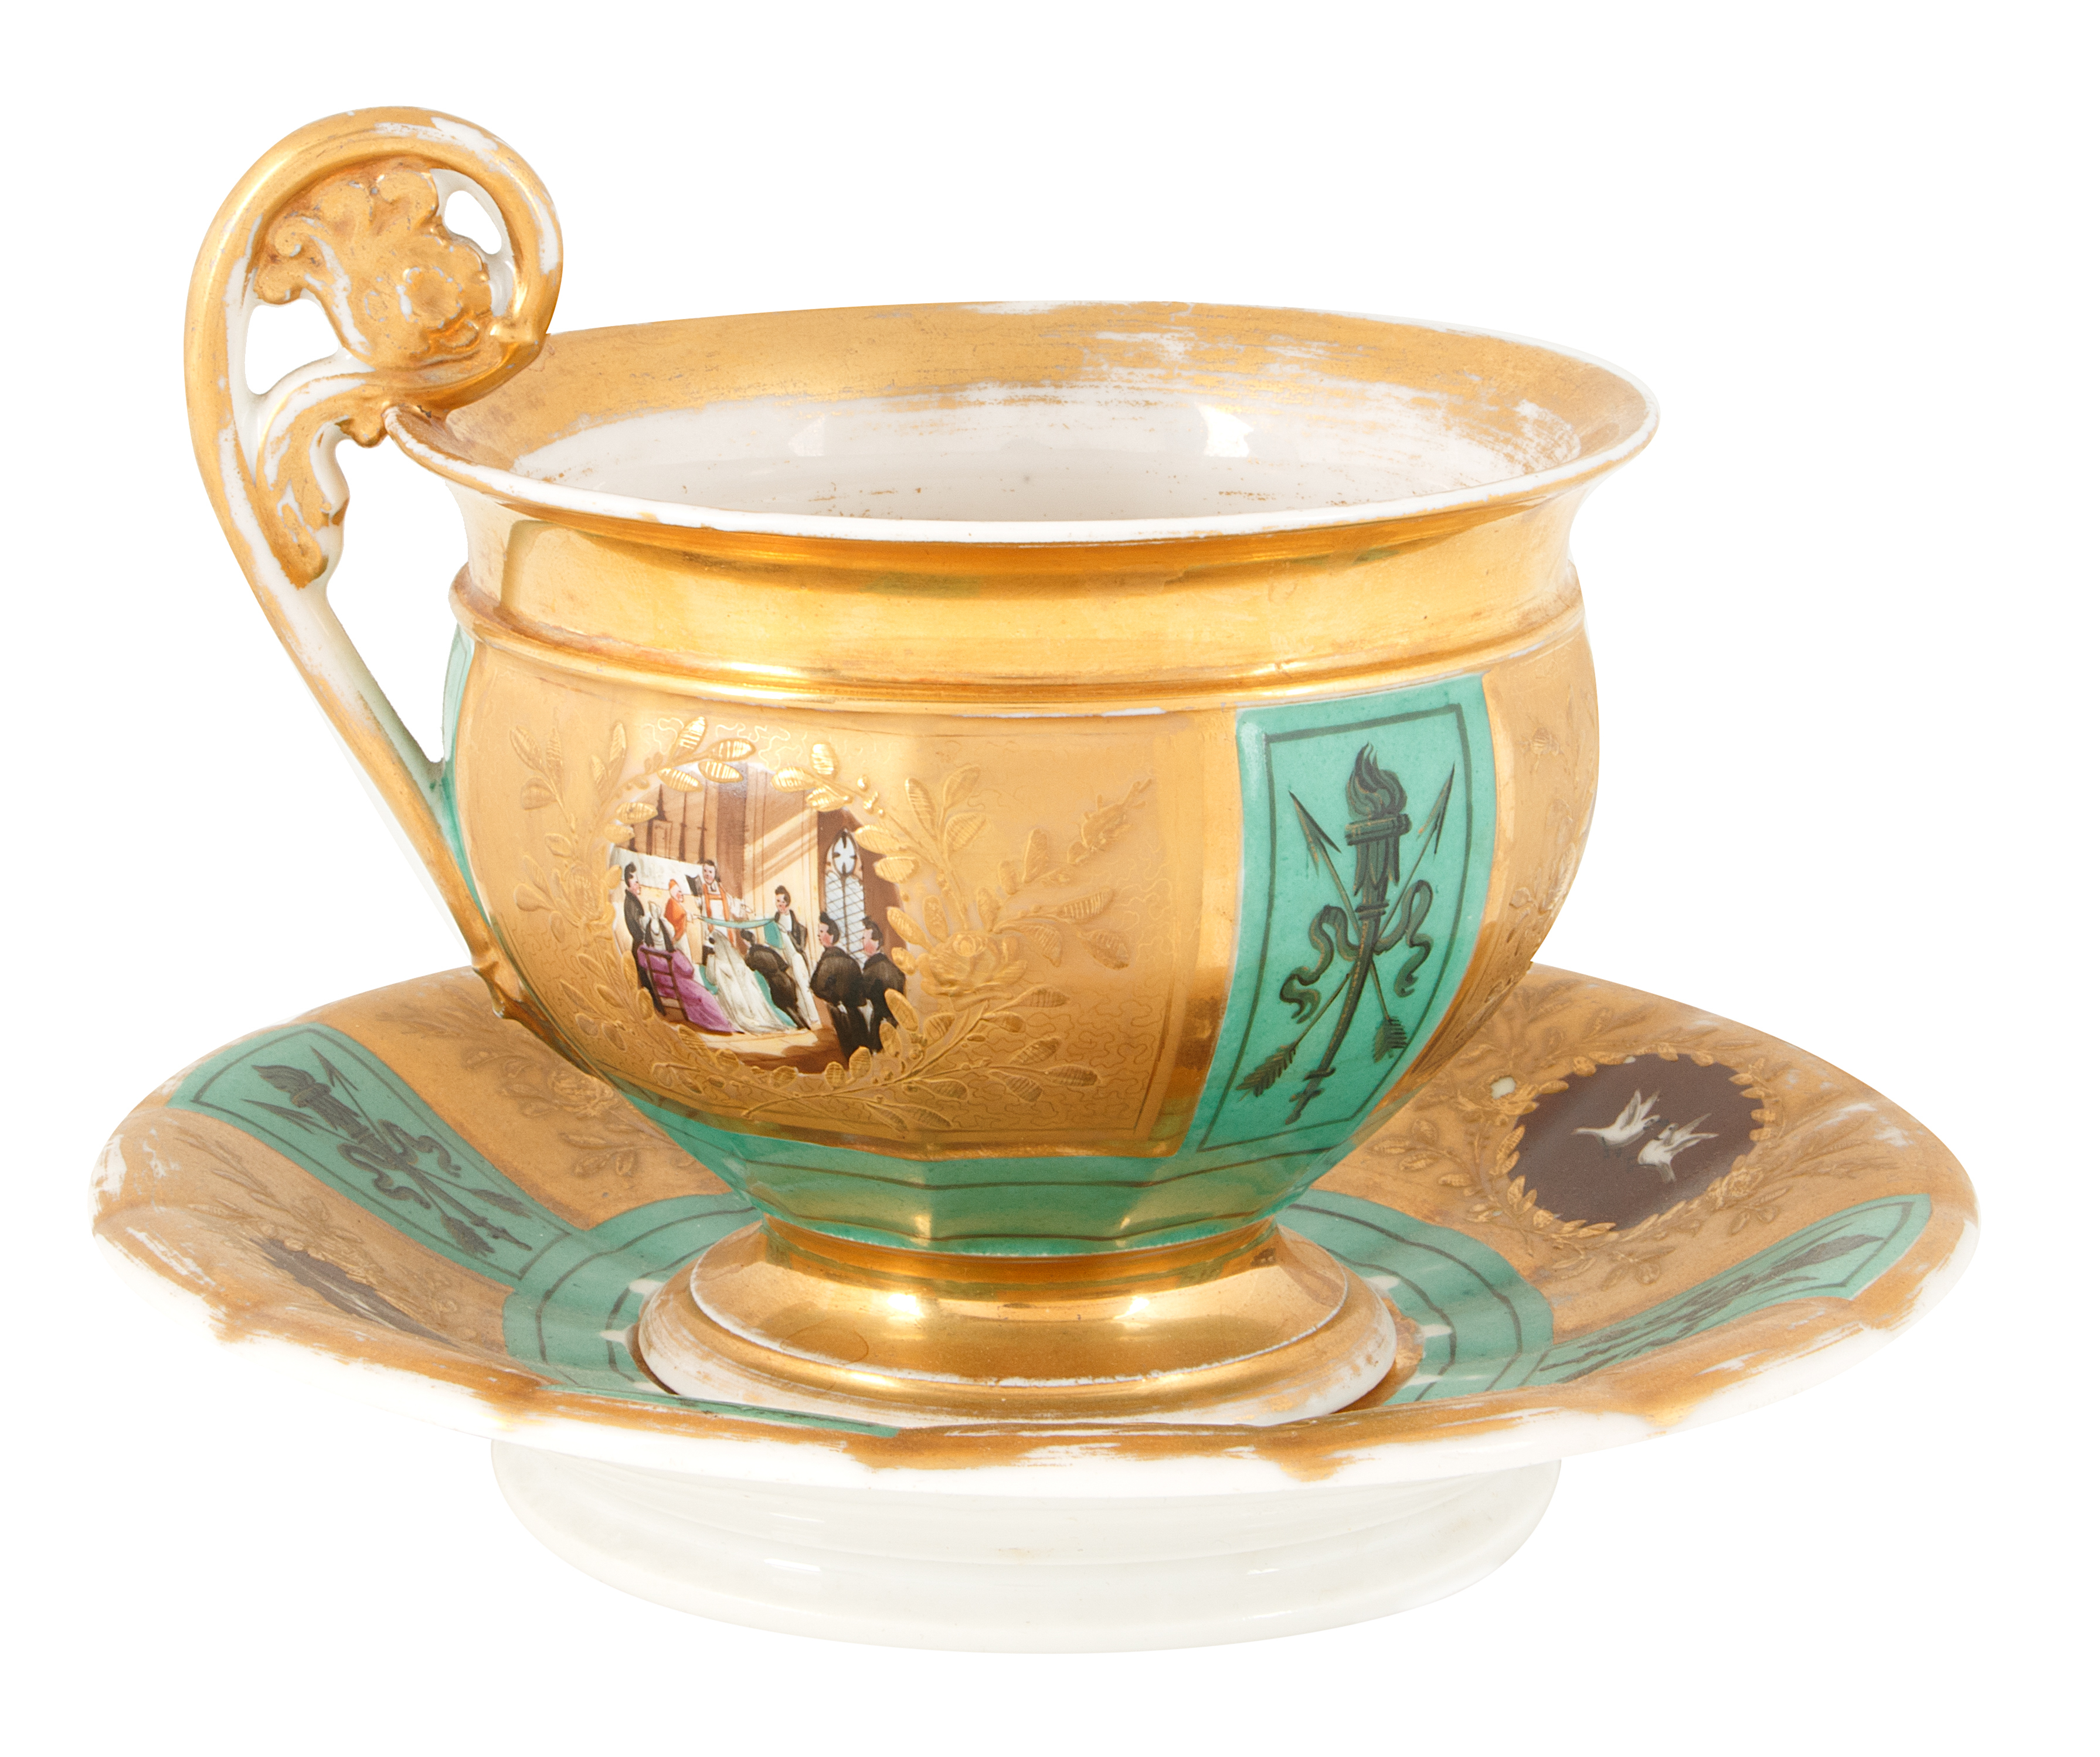 19TH CENTURY GILT PORCELAIN TEA CUP AND SAUCER - Image 2 of 5